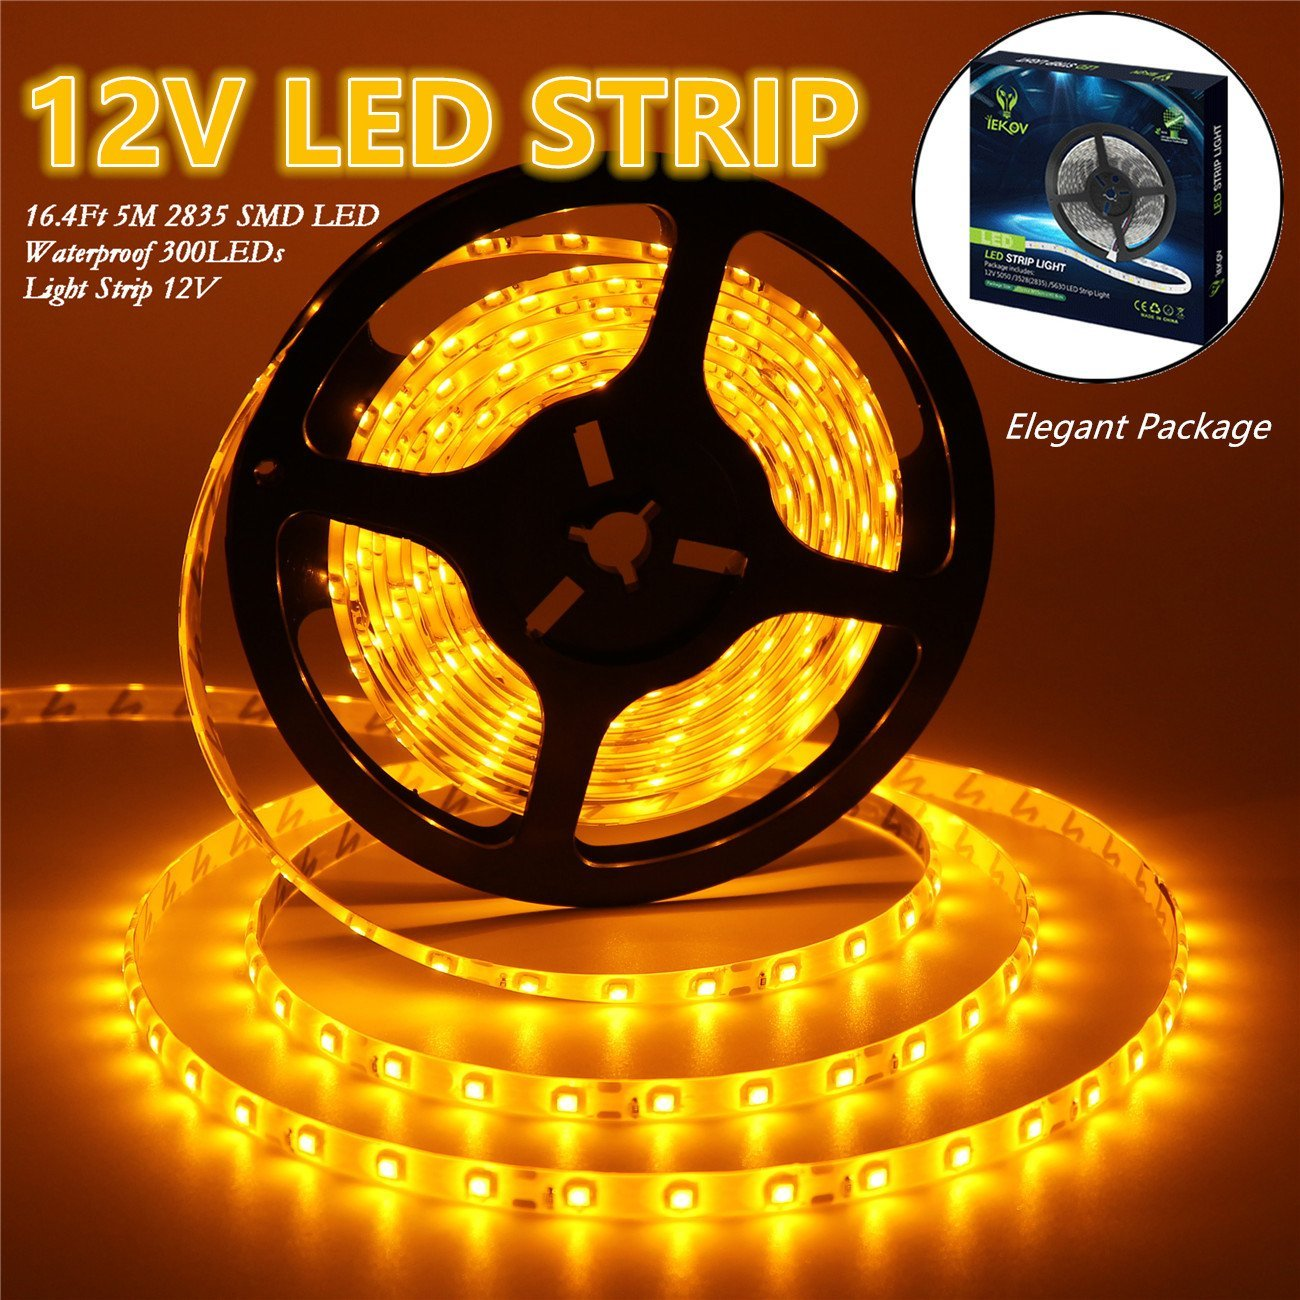 IEKOV Led Strip Lights, trade; 2835 SMD 300LEDs Waterproof Flexible Xmas Decorative Lighting Strips, LED Tape, 5M 16.4Ft DC12V, 2 times brightness than SMD 3528 LED Light Strip (Yellow)